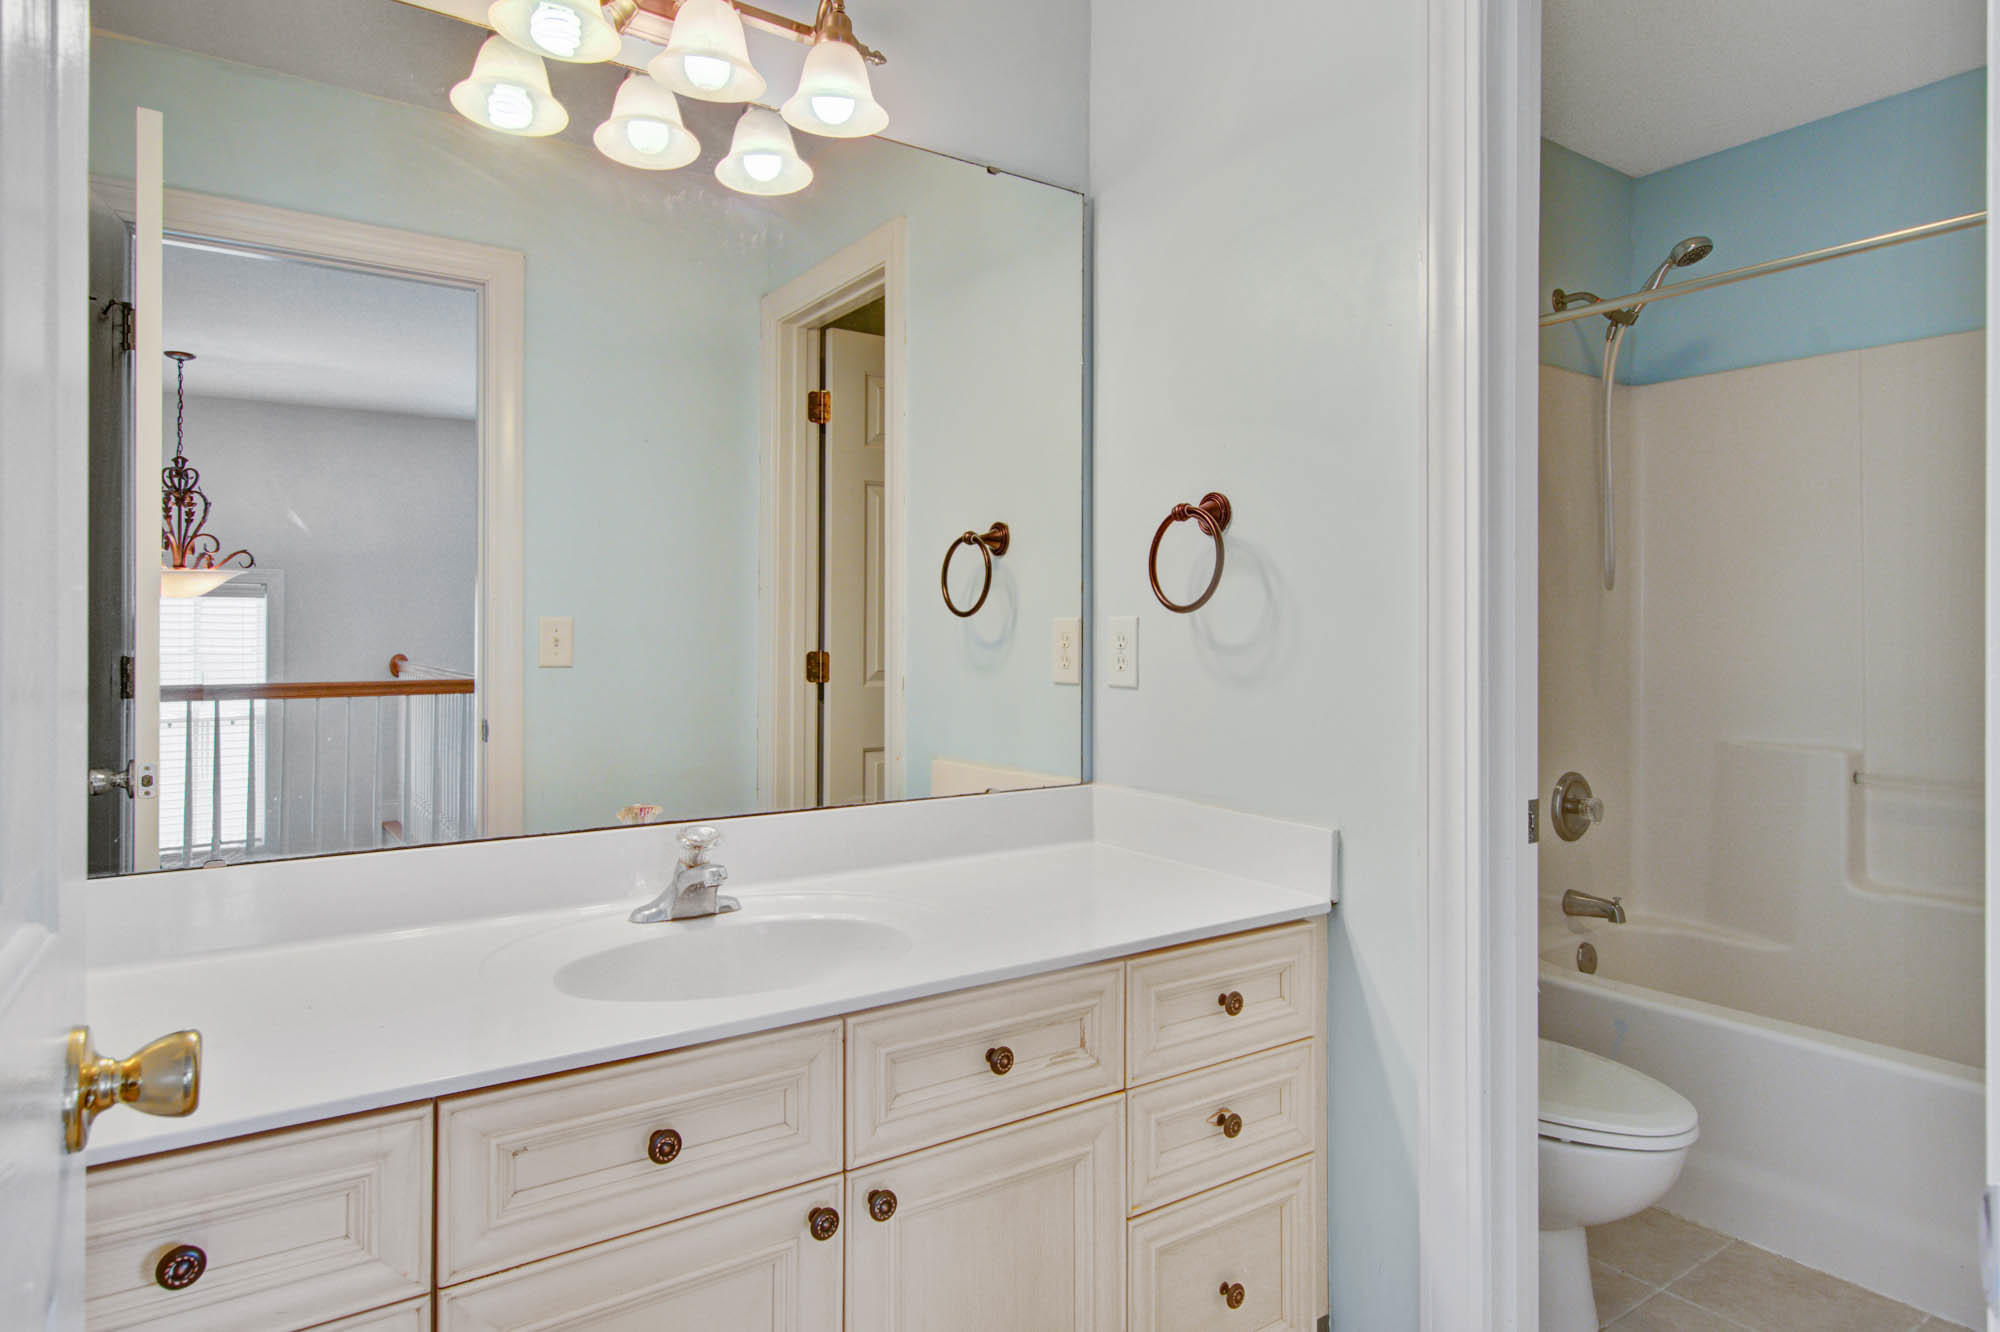 Rivertowne On The Wando Homes For Sale - 2193 Sandy Point, Mount Pleasant, SC - 0